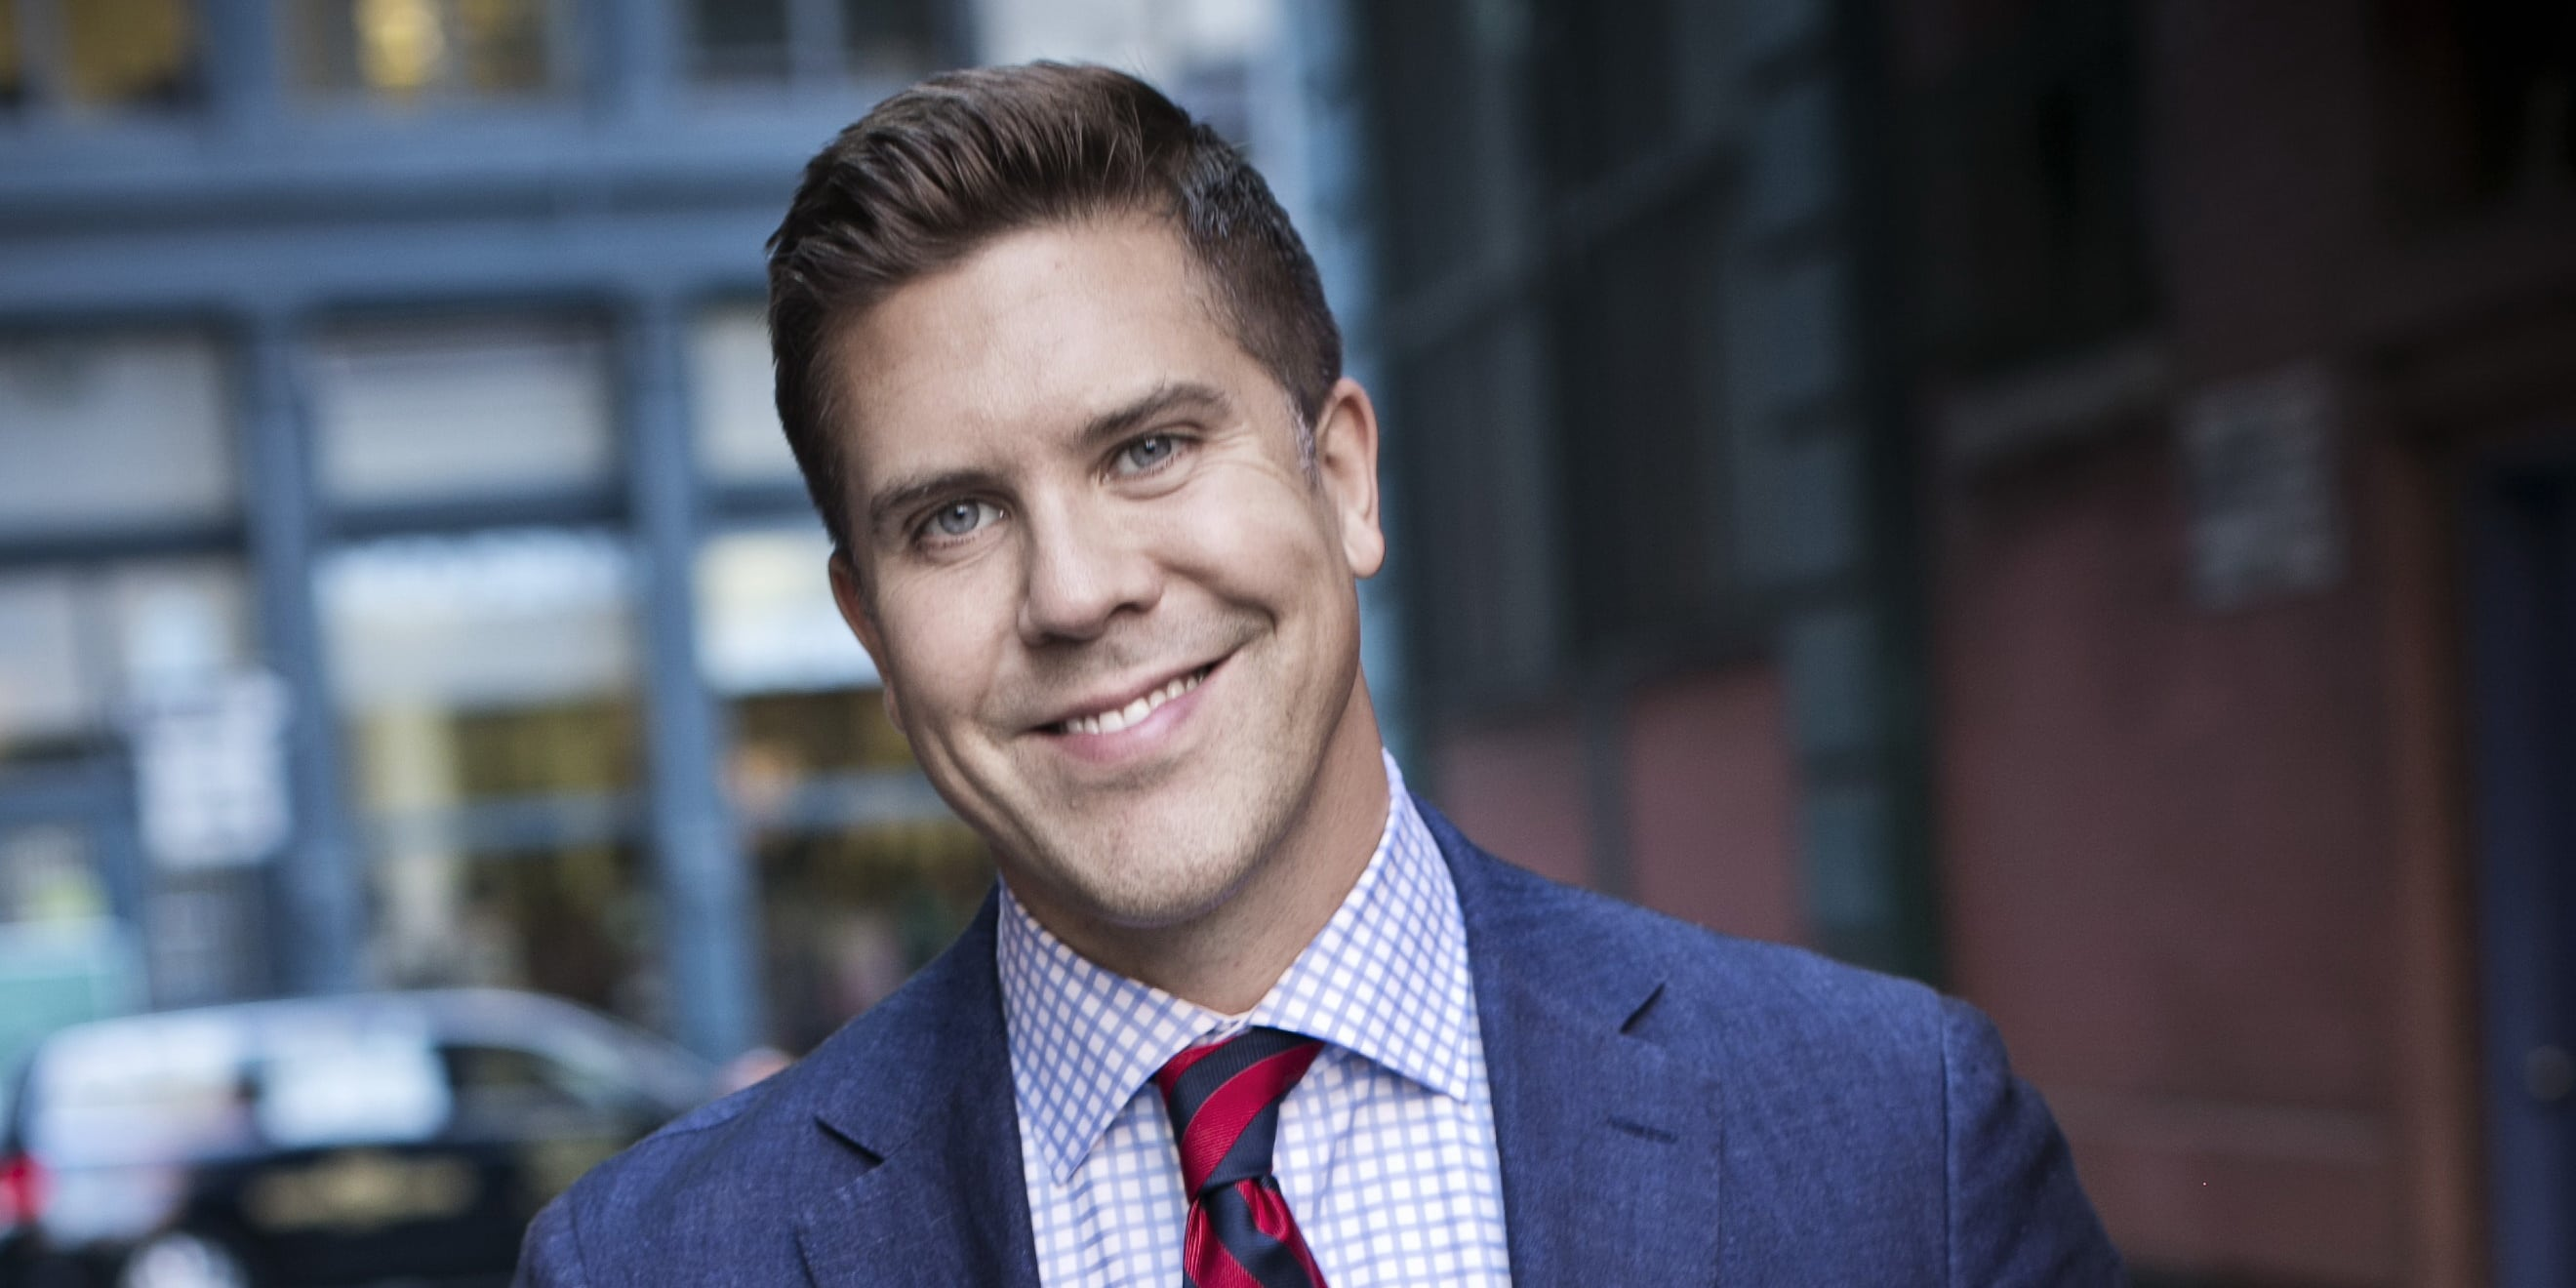 richest businessmen business executives fredrik eklund net worth